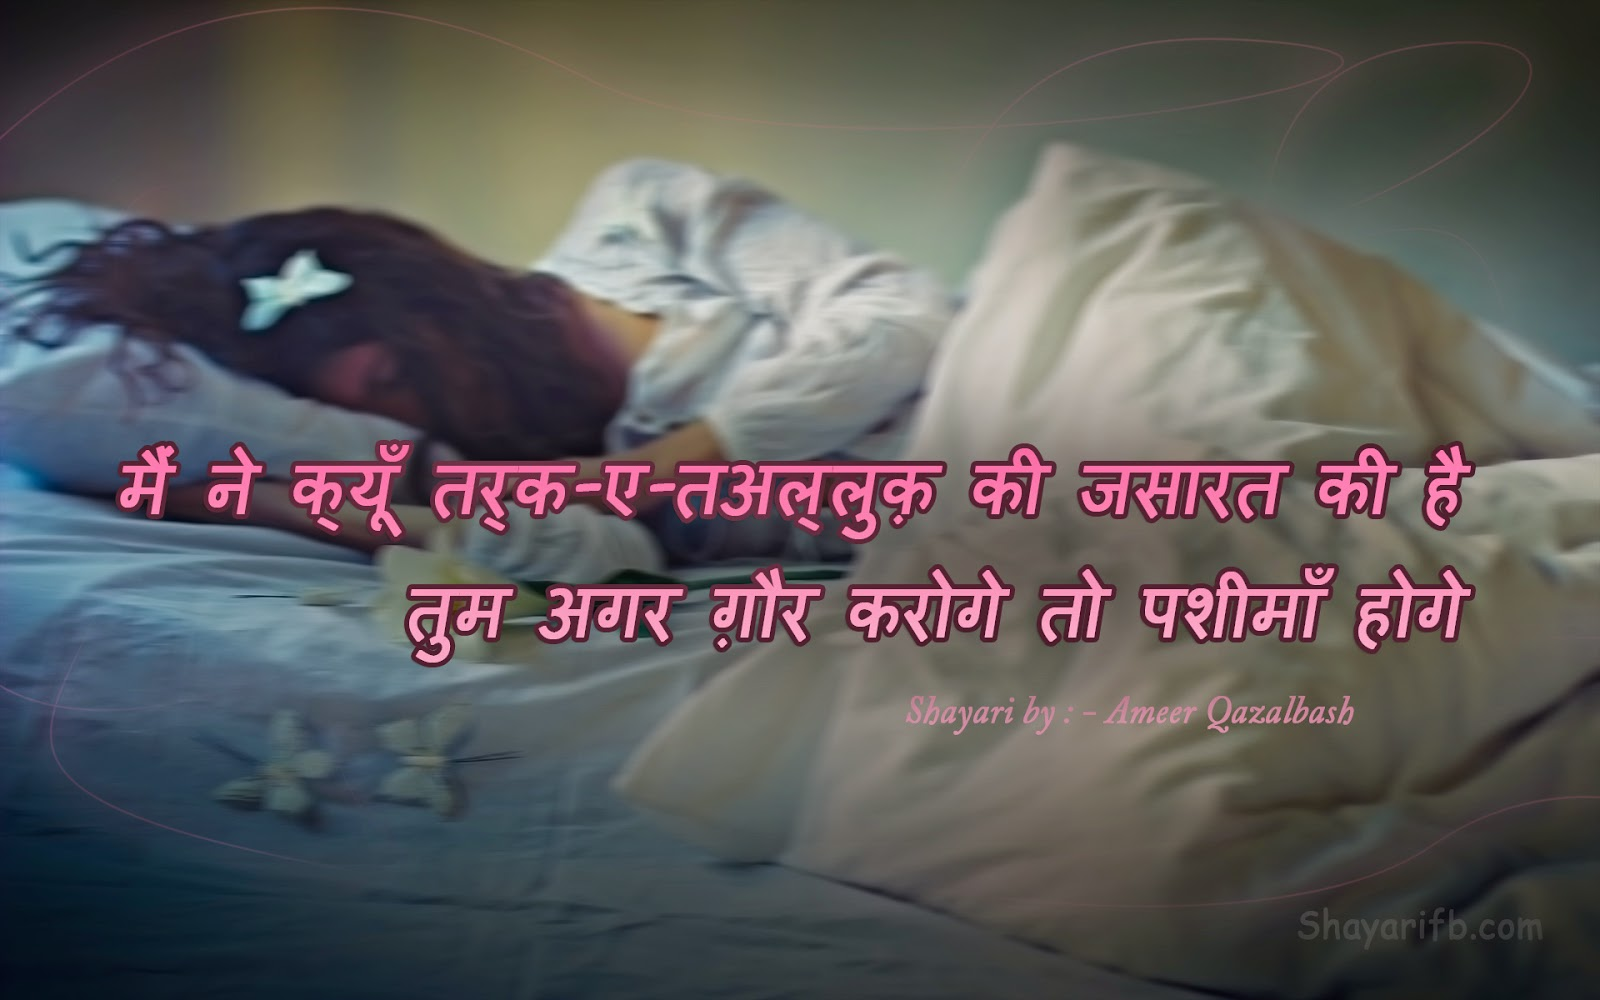 Wallpaper Love Sayri Image : Sad Images Sad wallpapers Sad Shayari